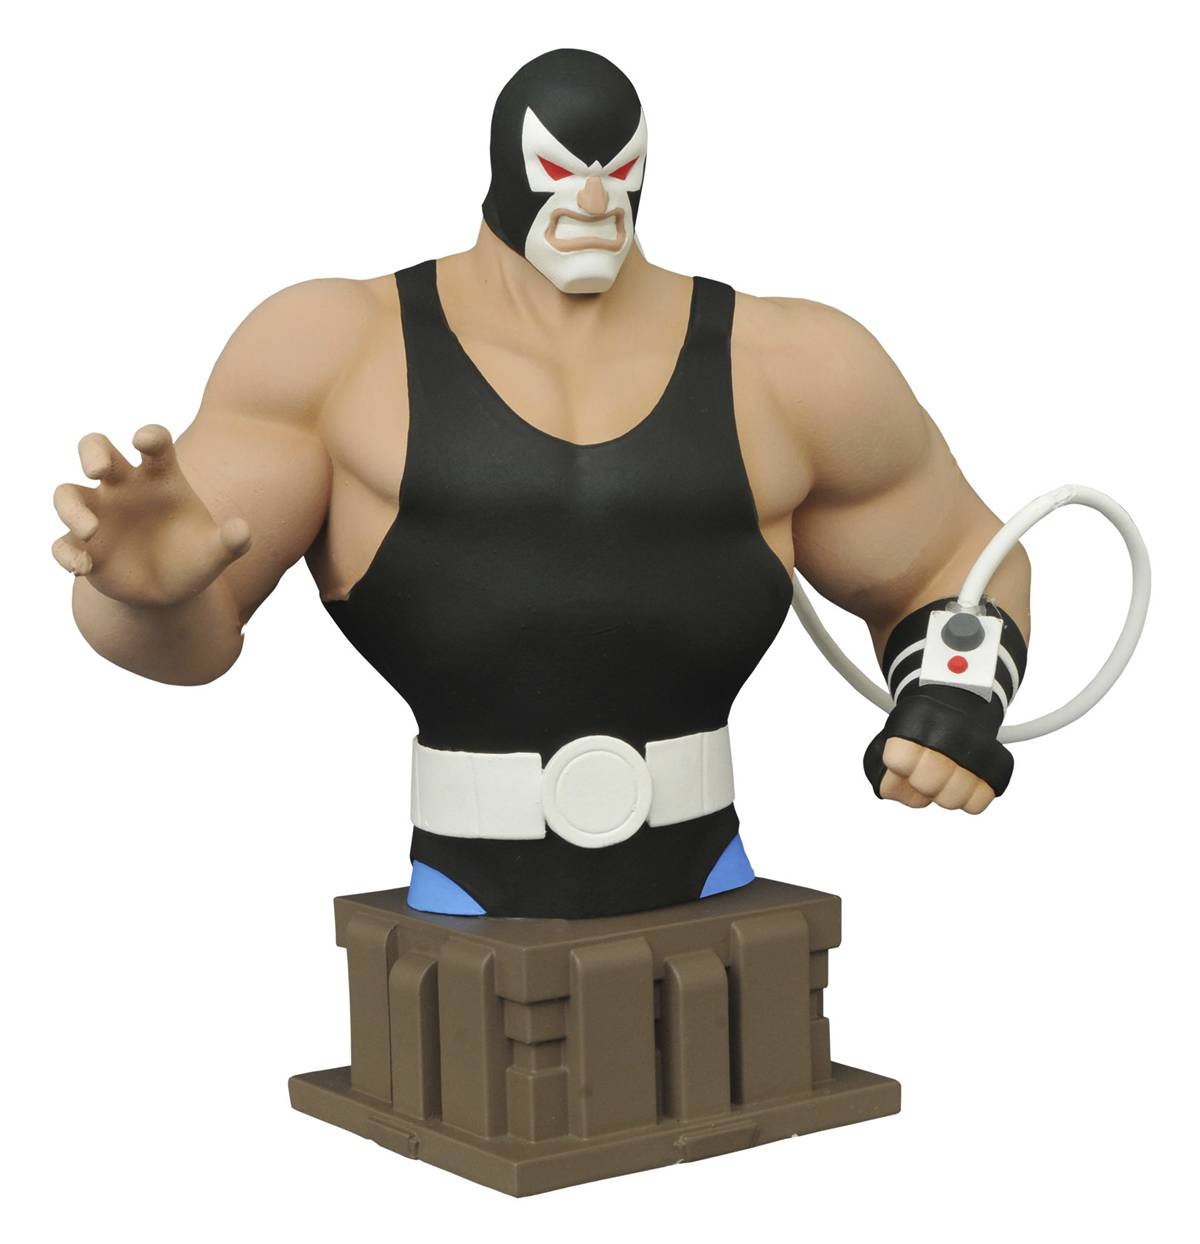 Diamond DC Comics Batman Animated Series Bane Bust